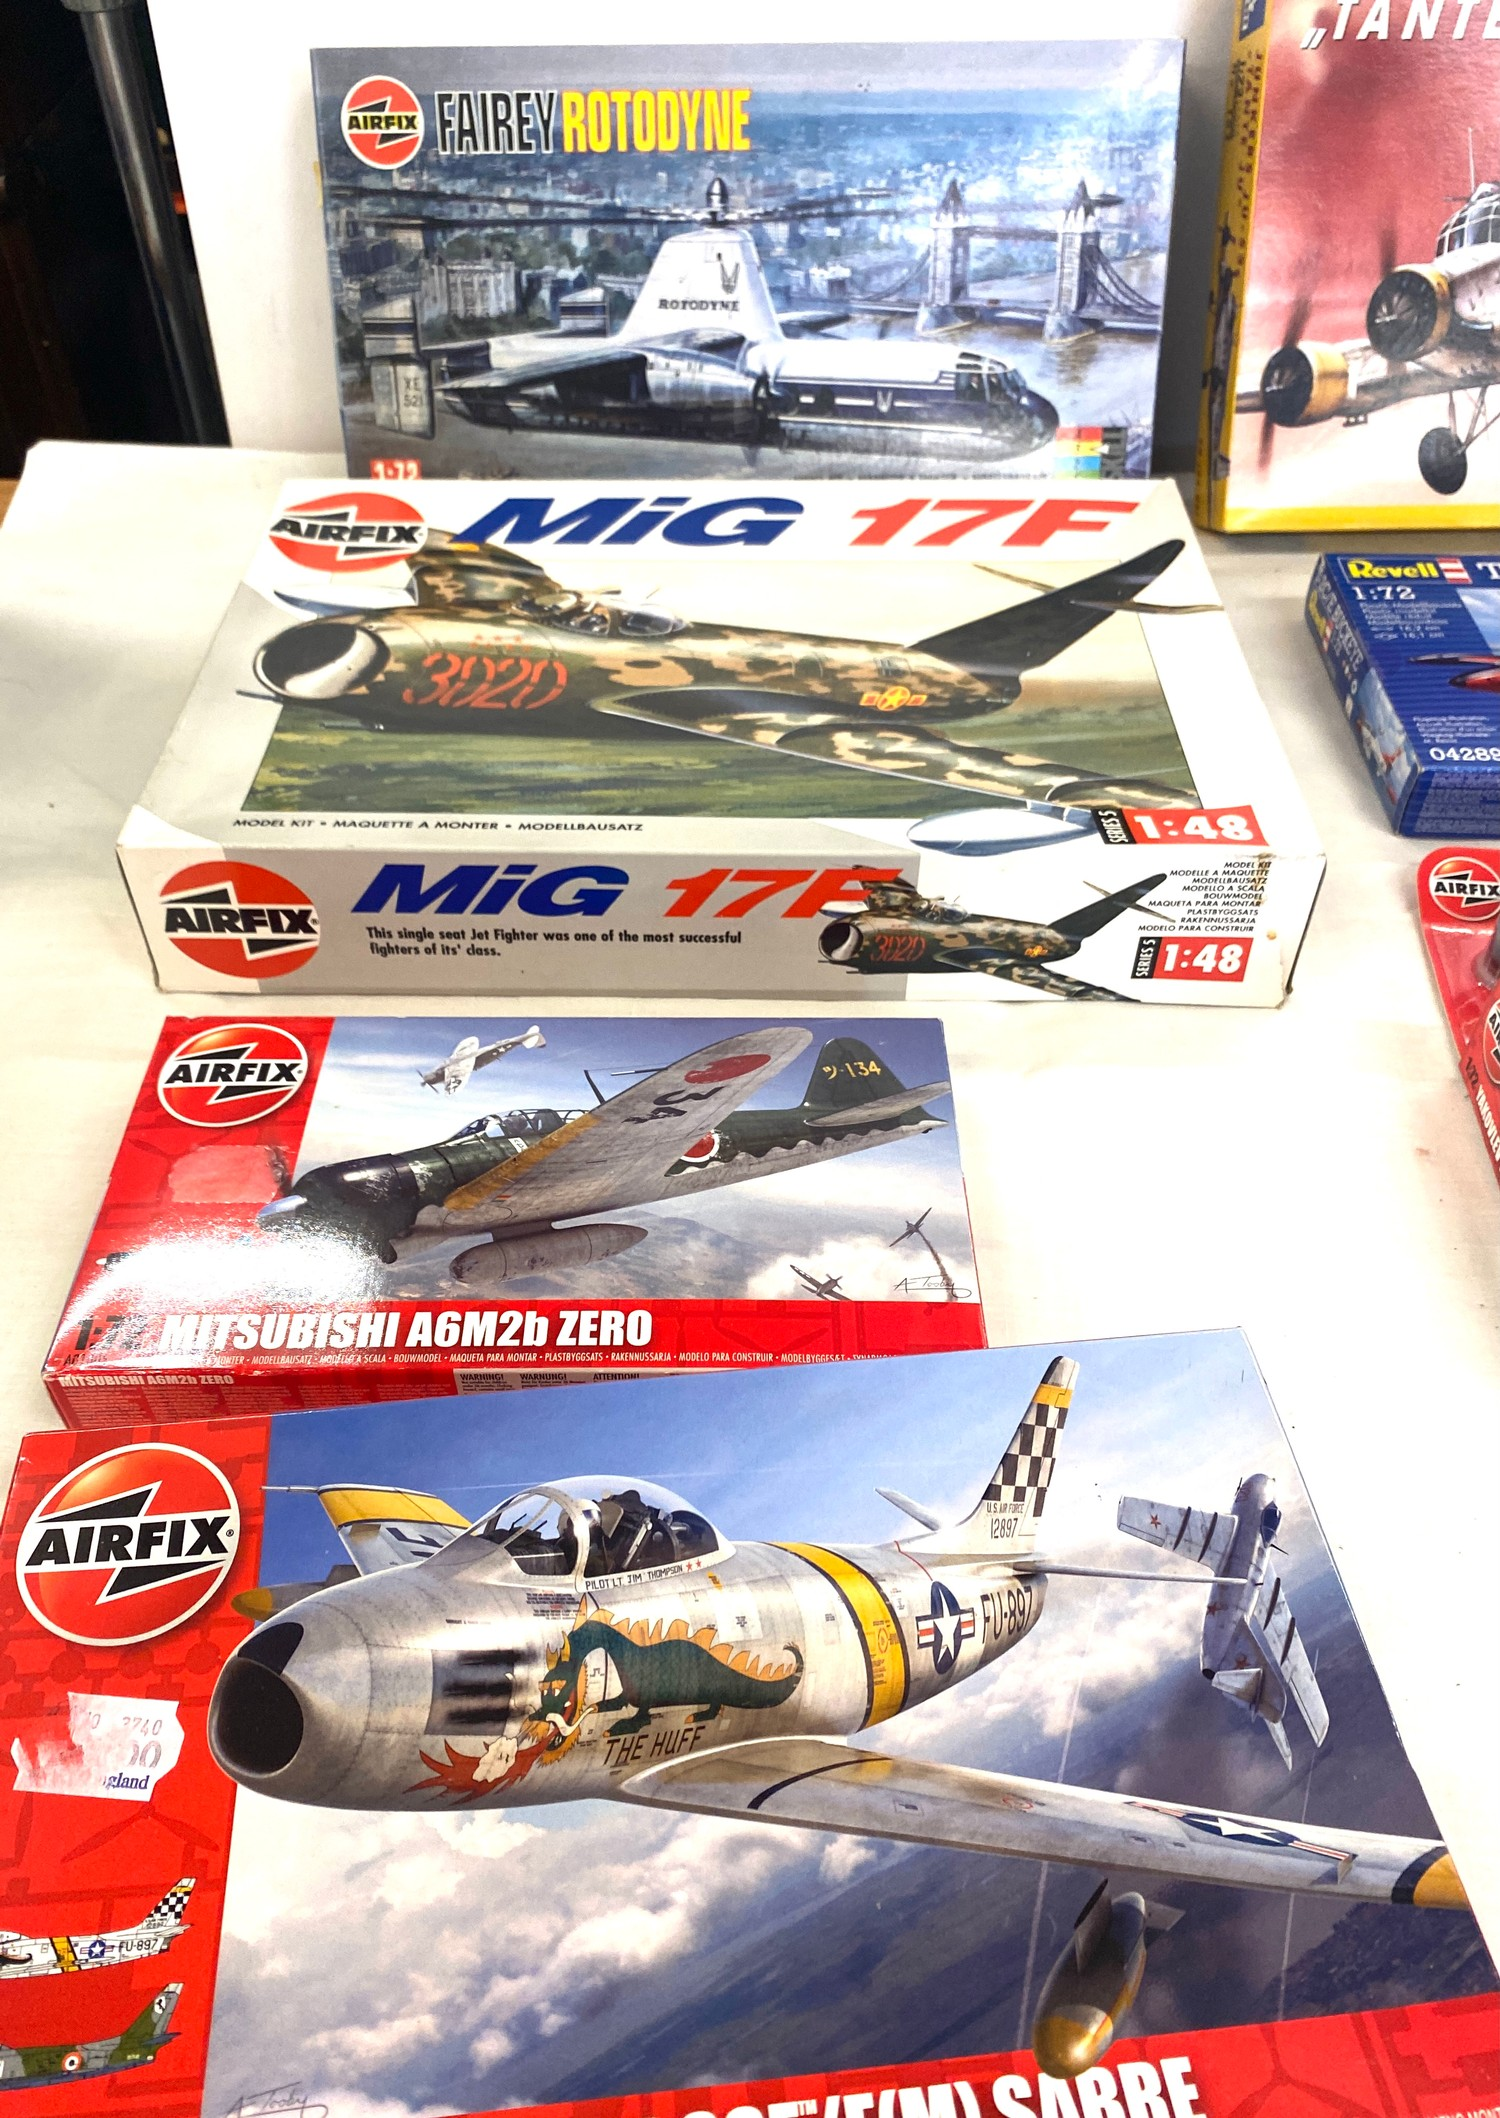 Selection of 8 boxed craft models to include, Airfix Fairey Rotodyne, Junkers JU-52, Mig 17F, - Image 3 of 3